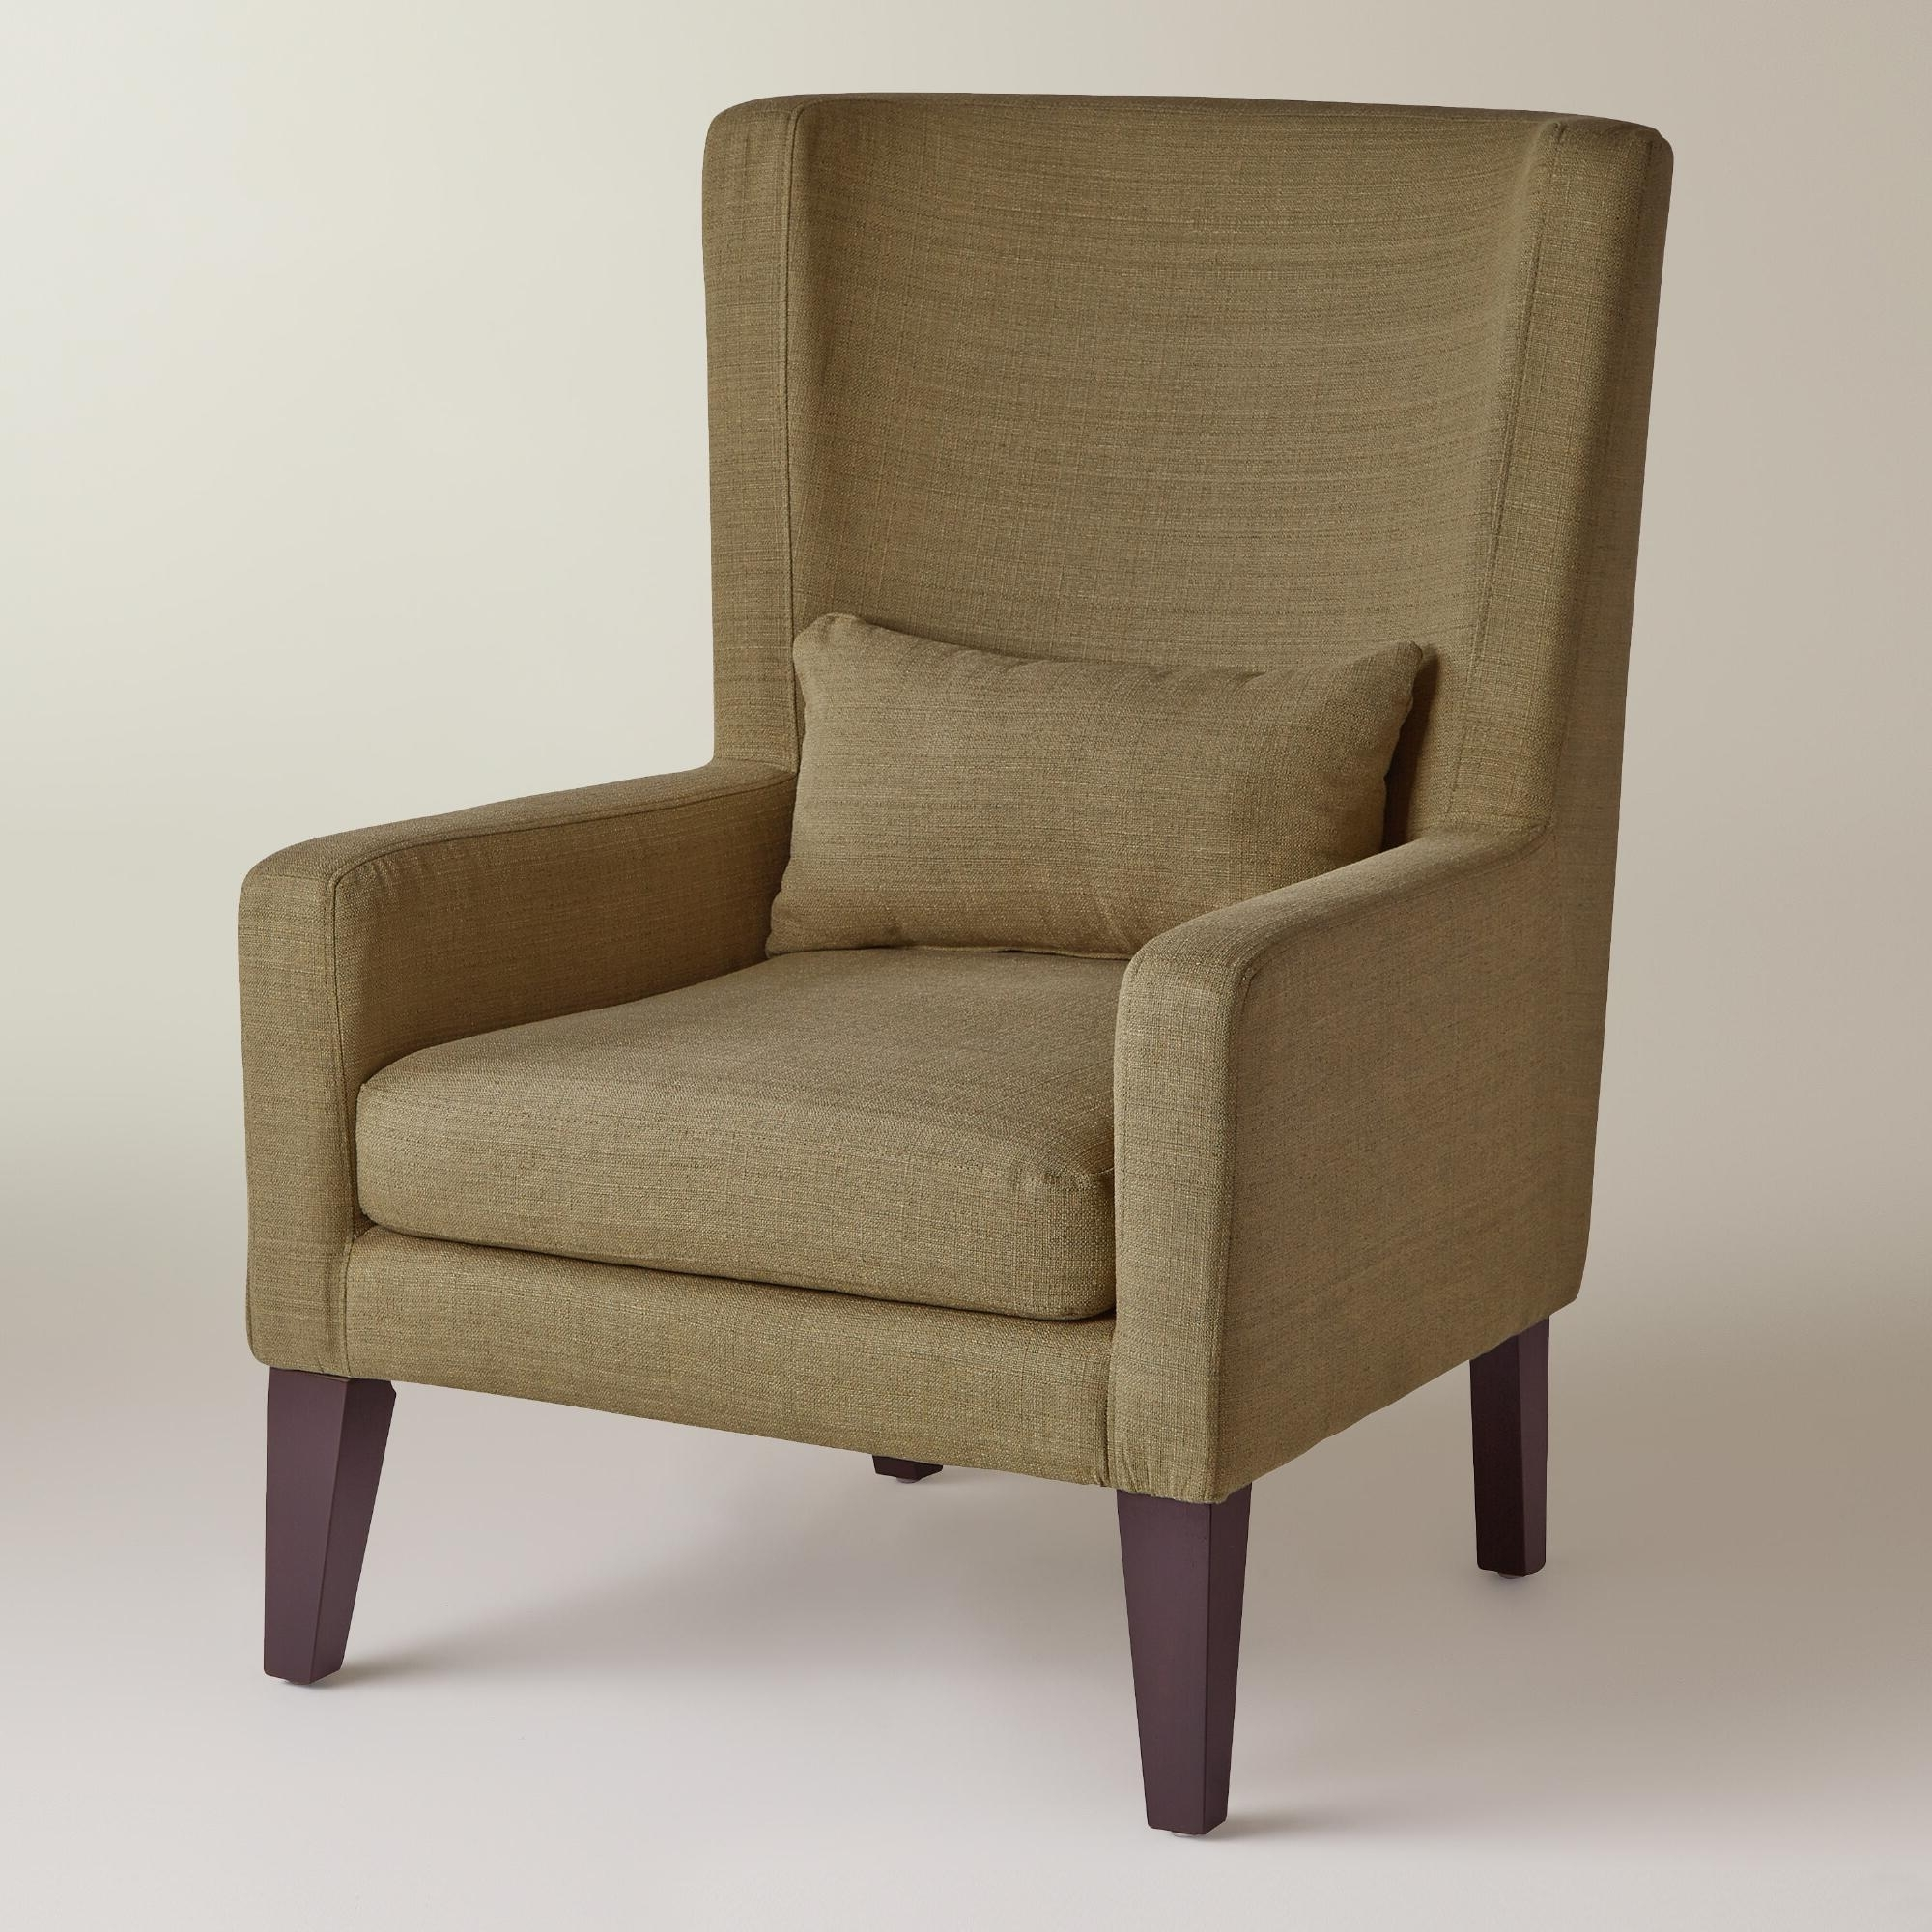 Furniture: Amazing Chairs For Living Room Hayneedle Outdoor Pertaining To Most Recently Released Green Sofa Chairs (View 15 of 20)